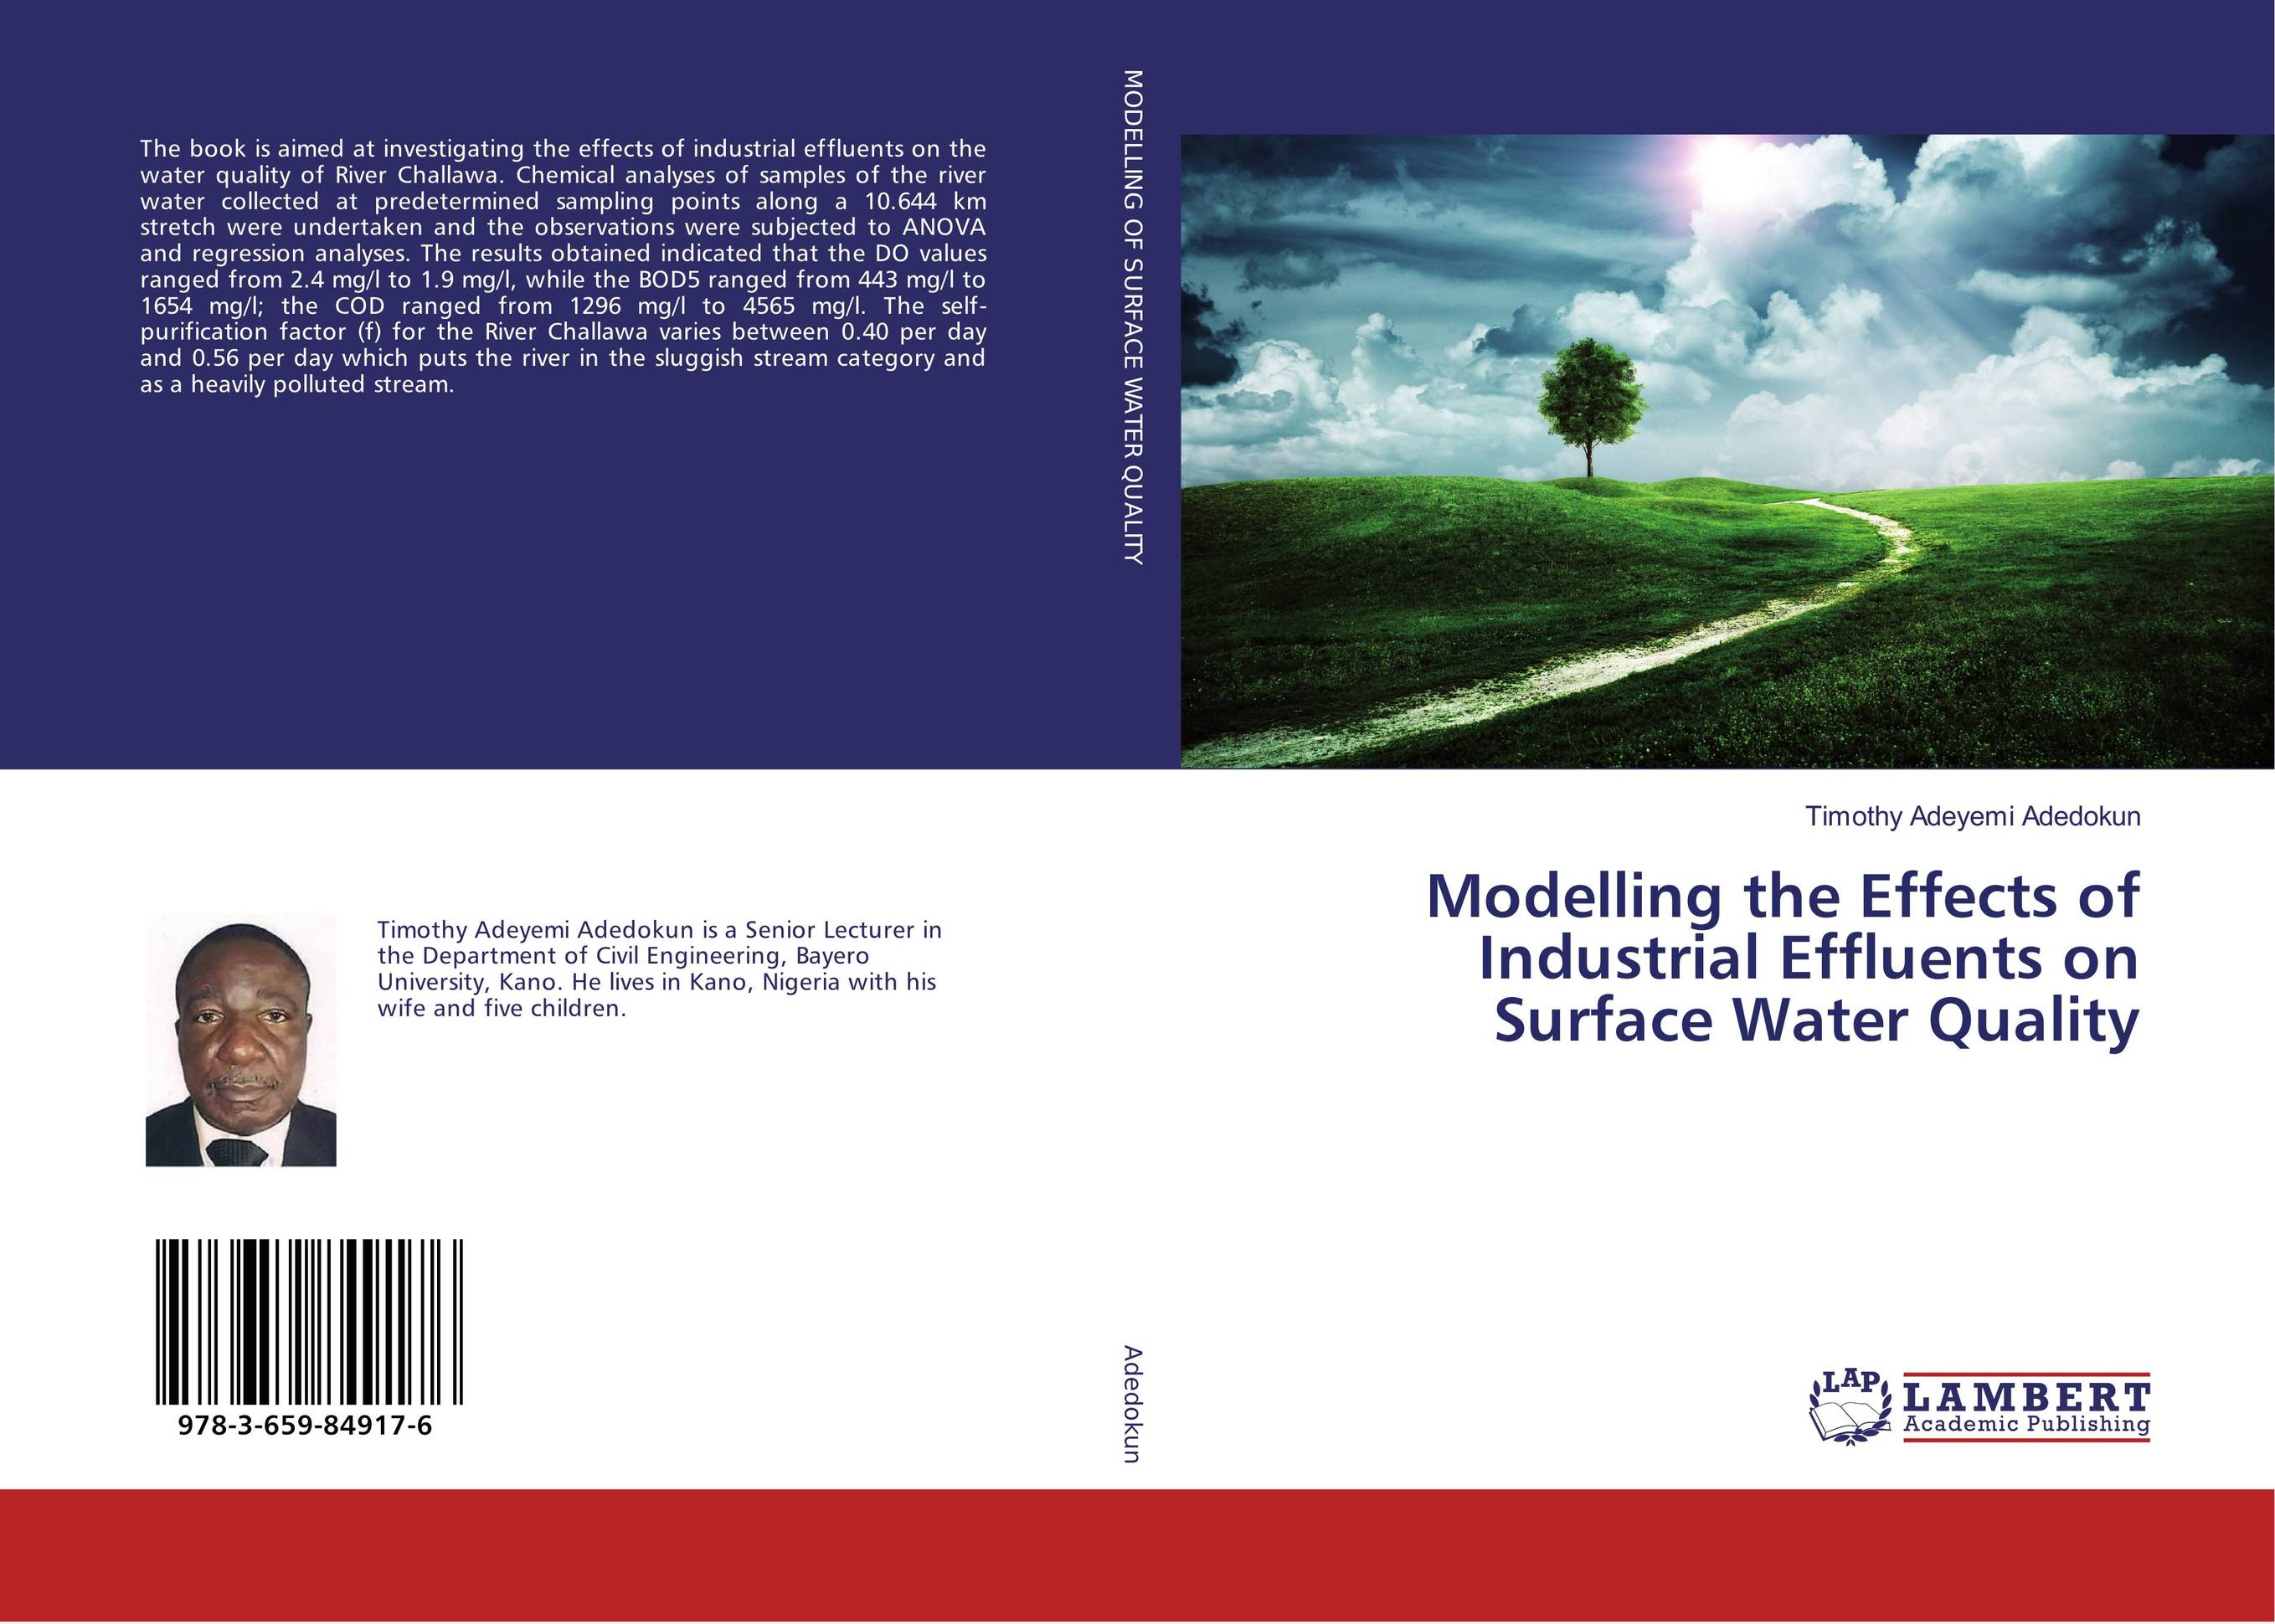 Modelling the Effects of Industrial Effluents on Surface Water Quality